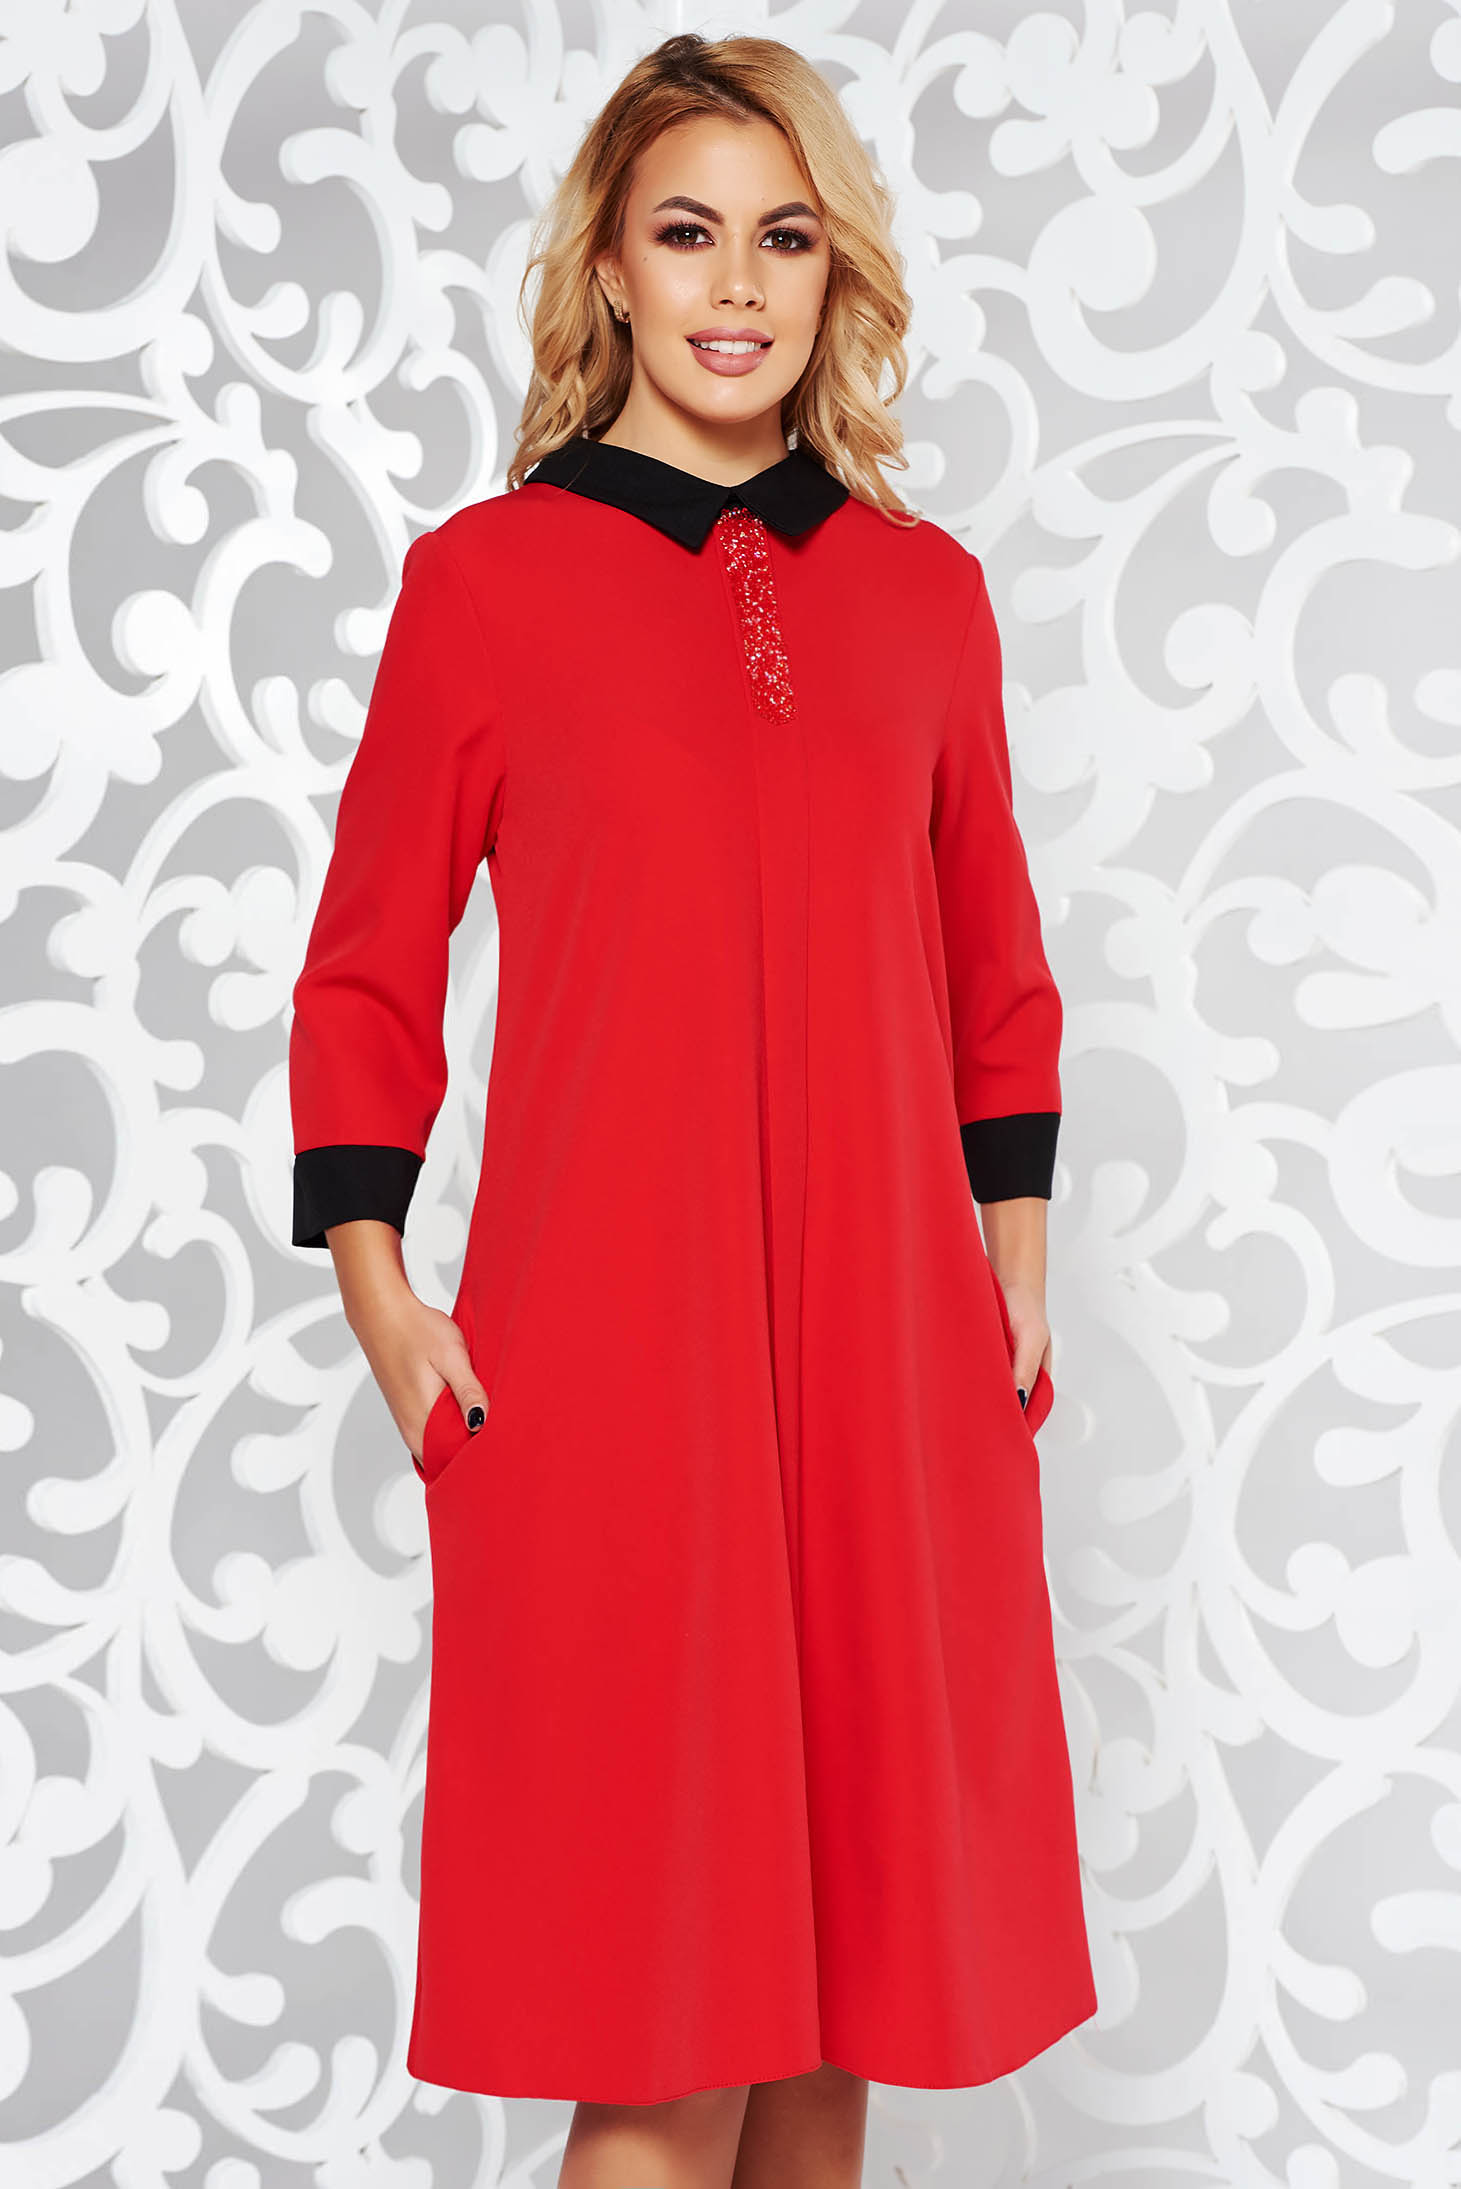 Red dress elegant flared slightly elastic fabric with bright details with pockets